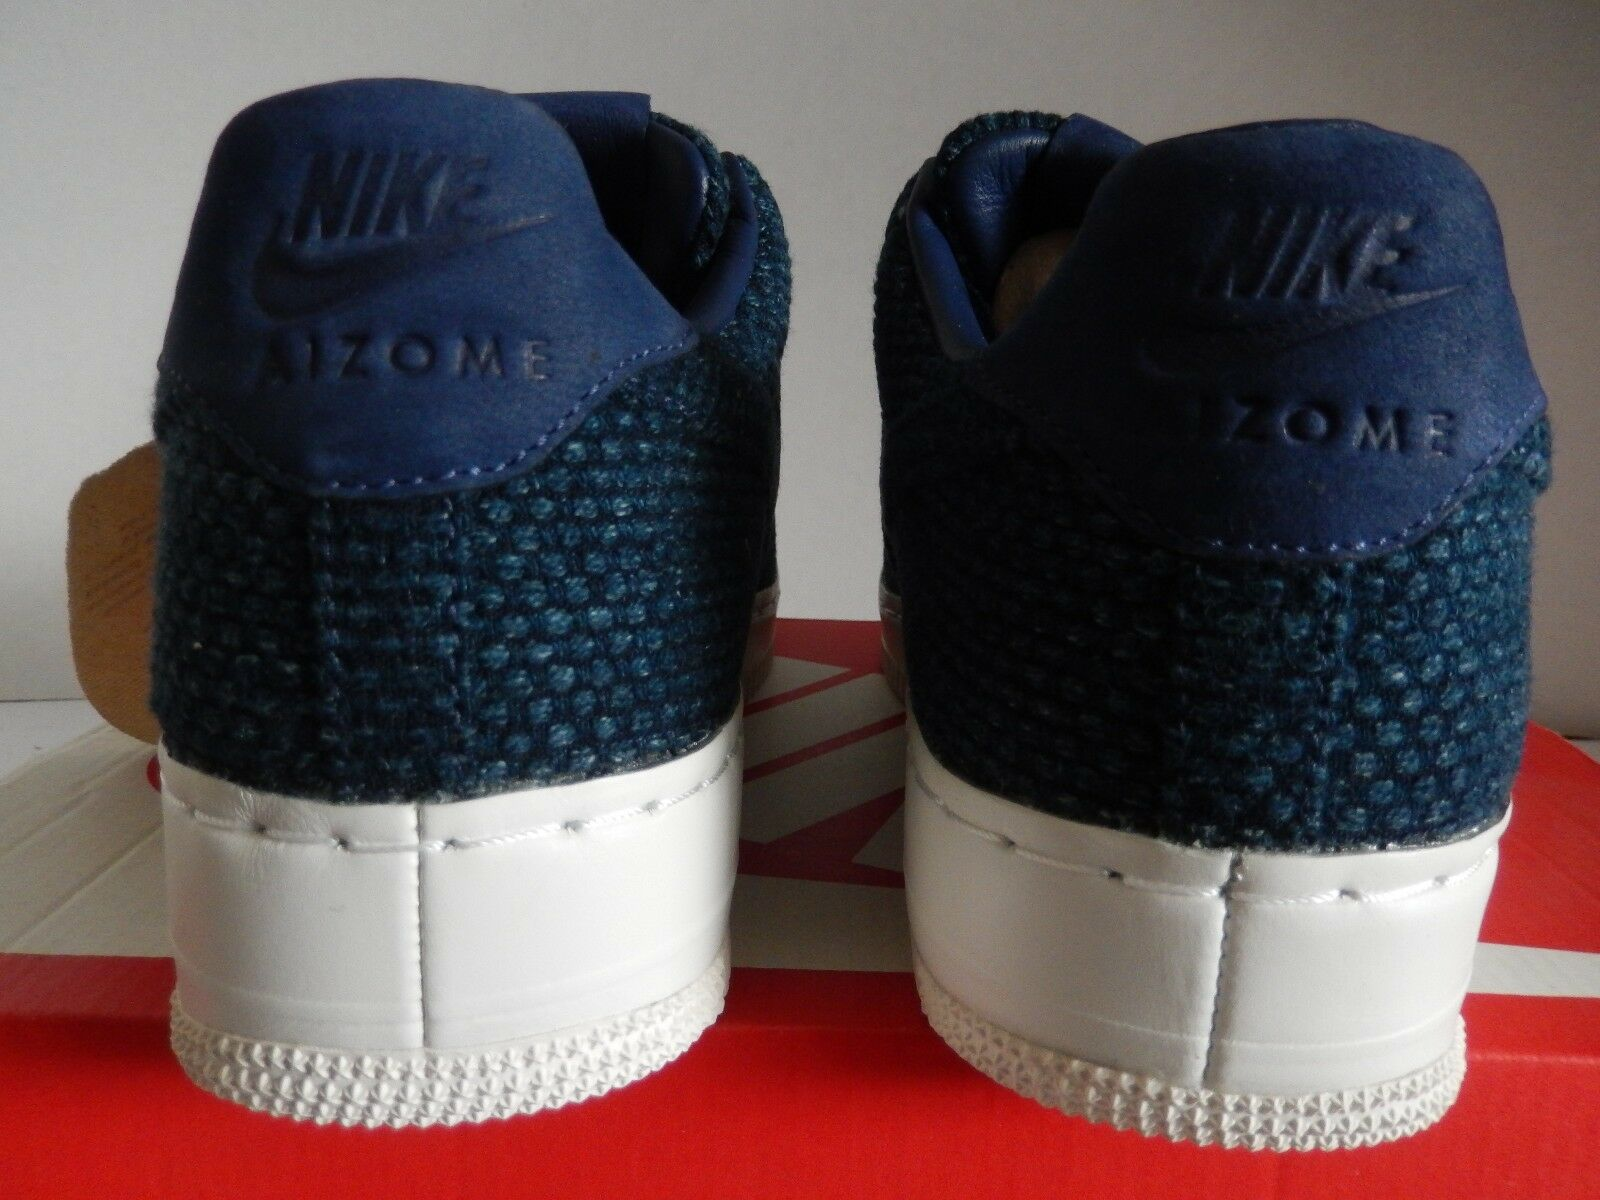 nike japan air force 1 niedrige aizome sashiko japan nike blau sz 11,5 selten!! 1df53d